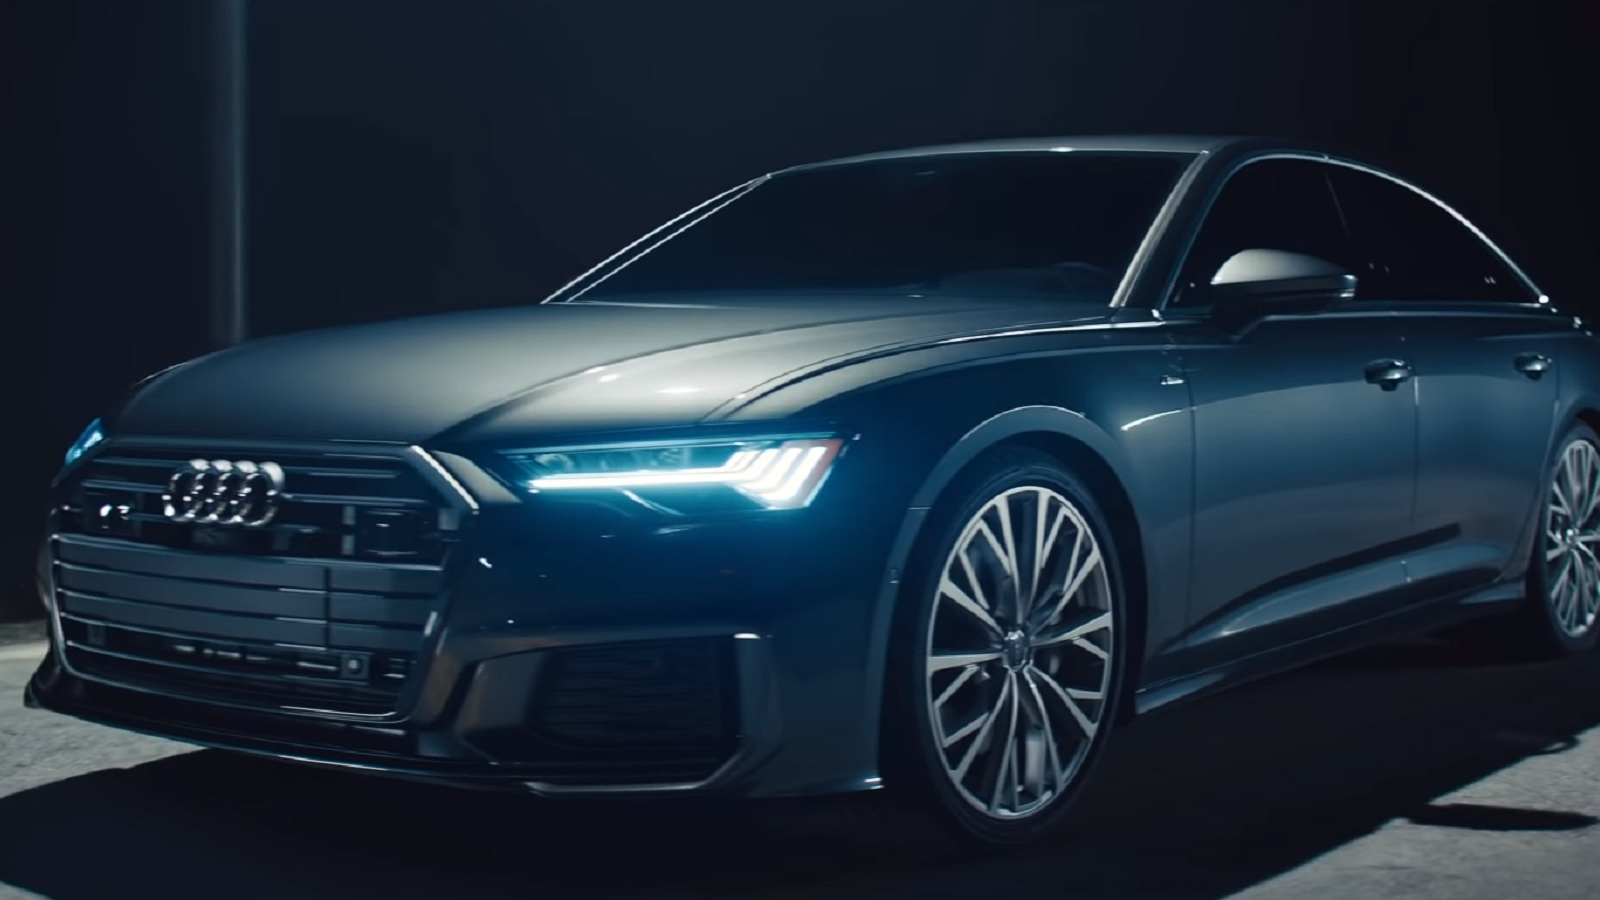 Audi Presents All-New A10 & A10 in a Very Dramatic Way | audi all cars